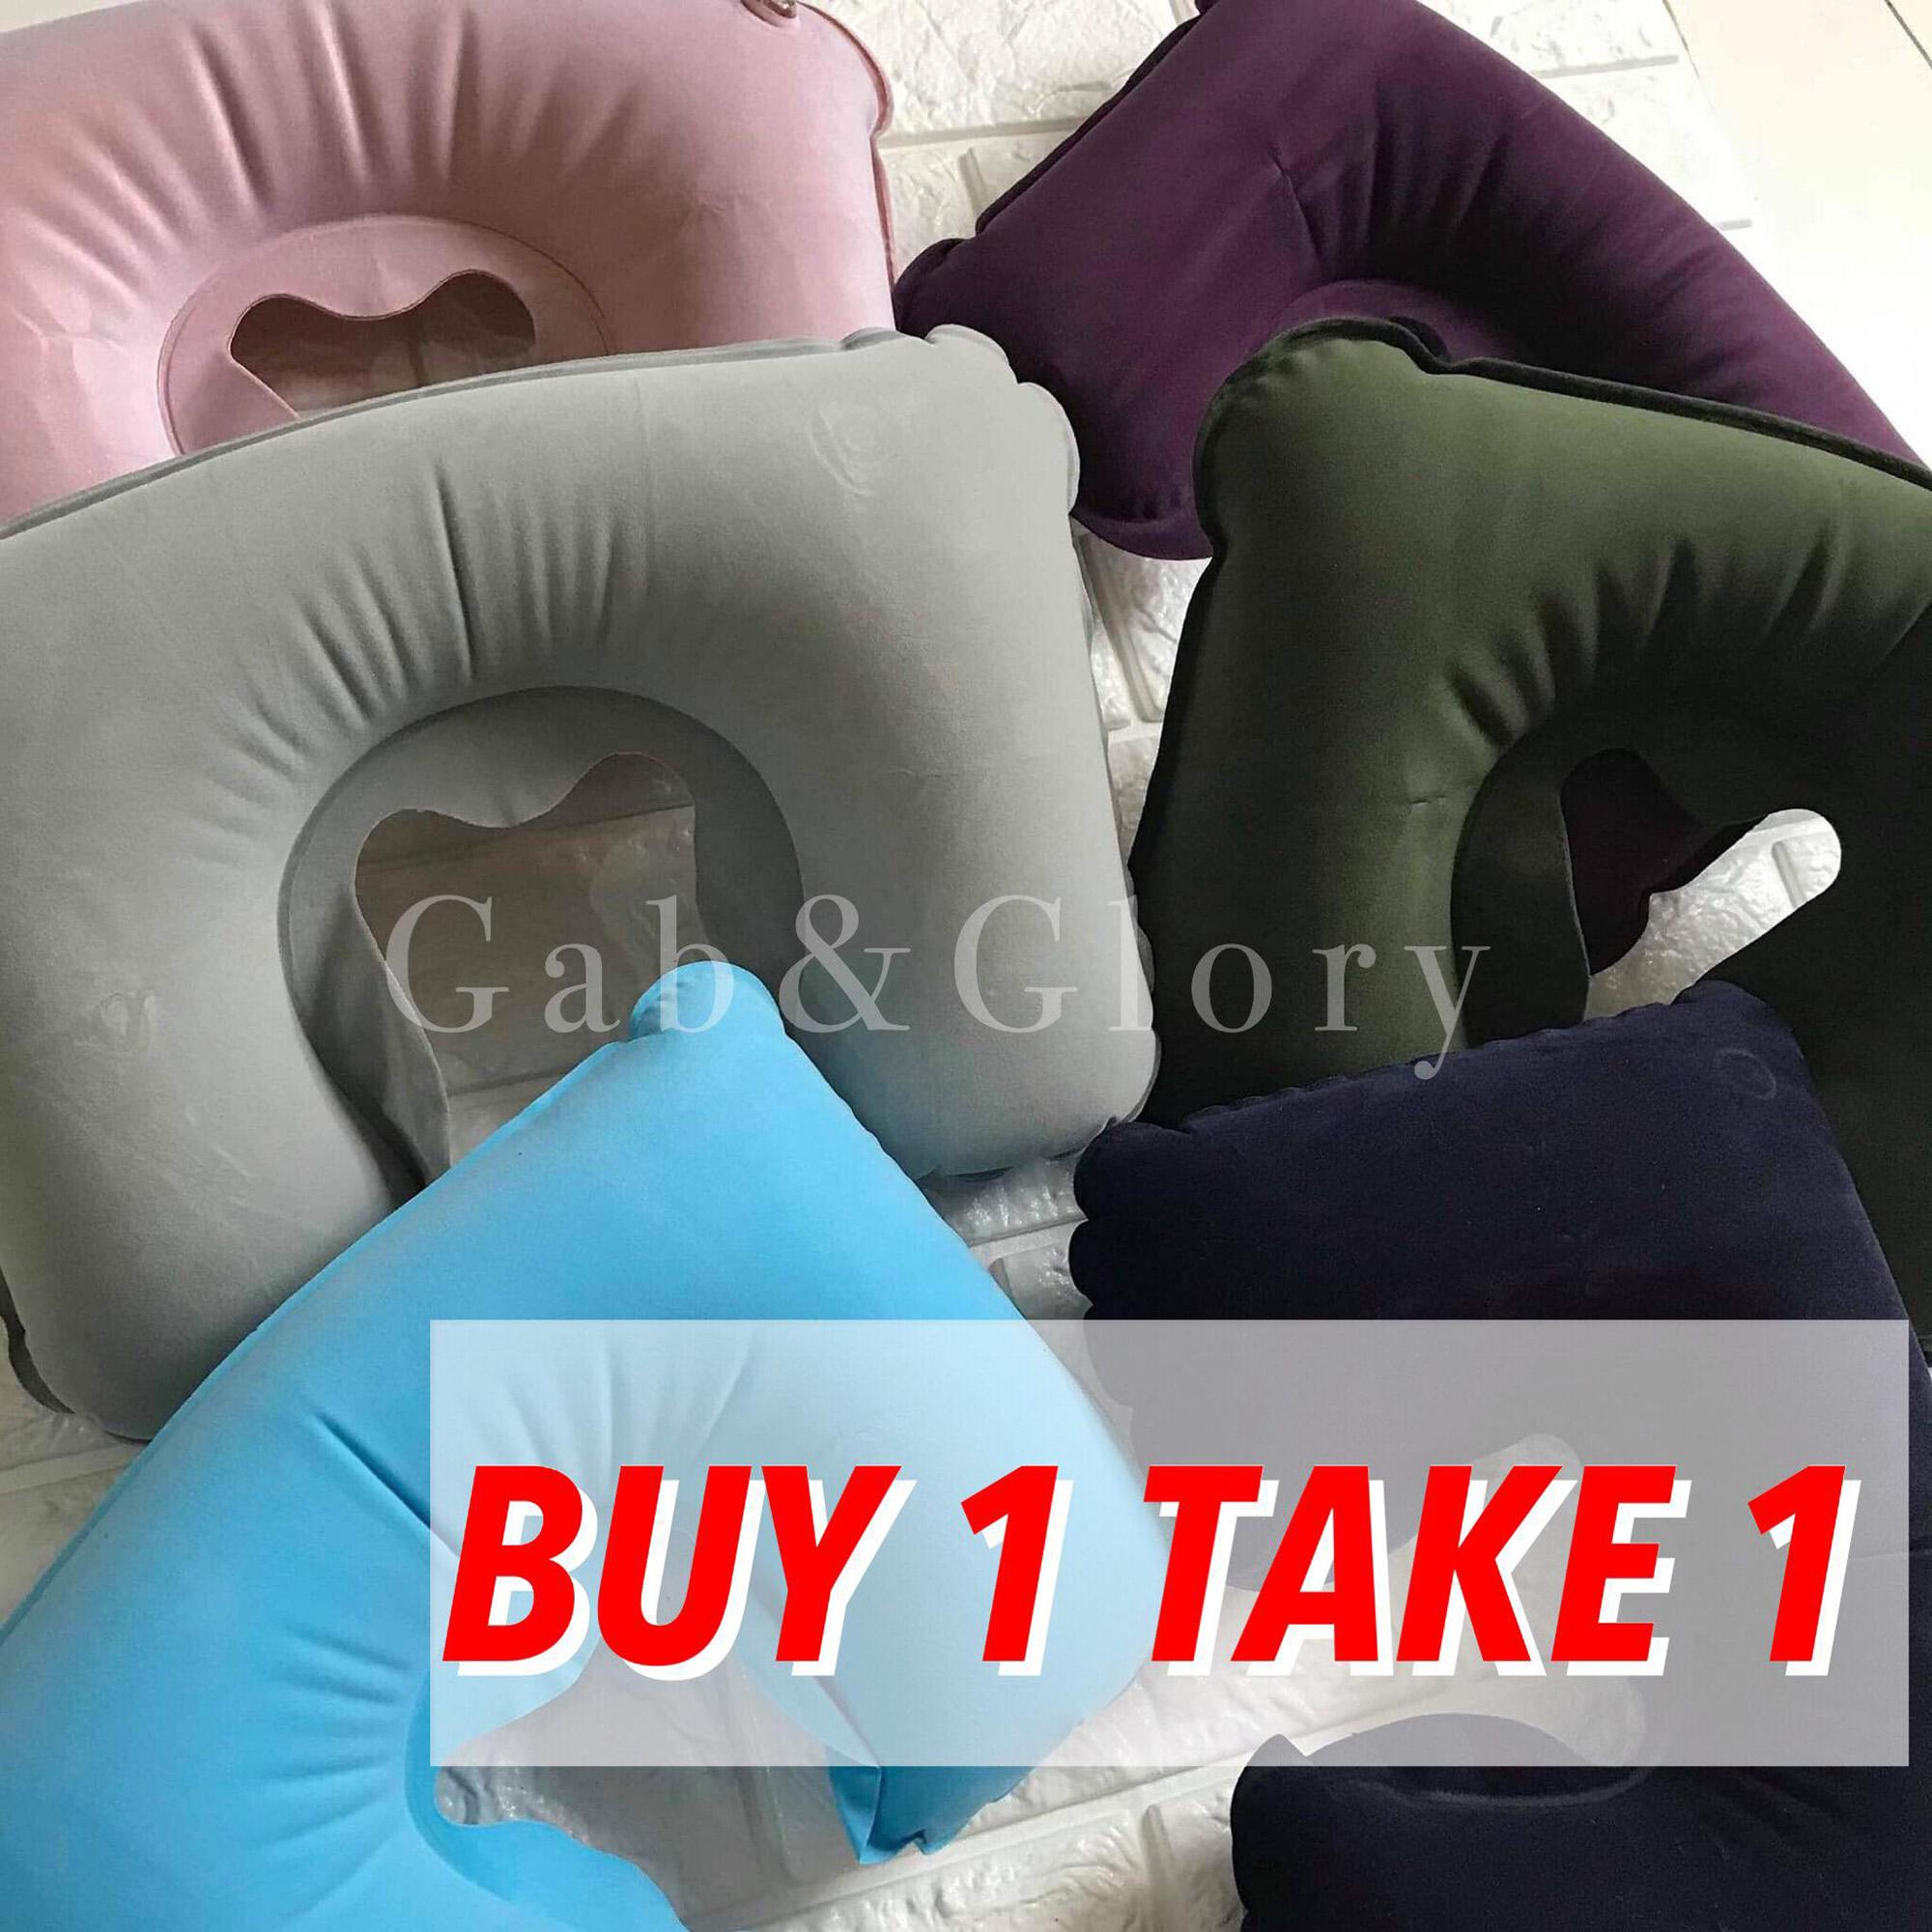 Buy 1 Take 1 Inflatable U Shaped Pillow Air Cushion Travel Neck Pillow